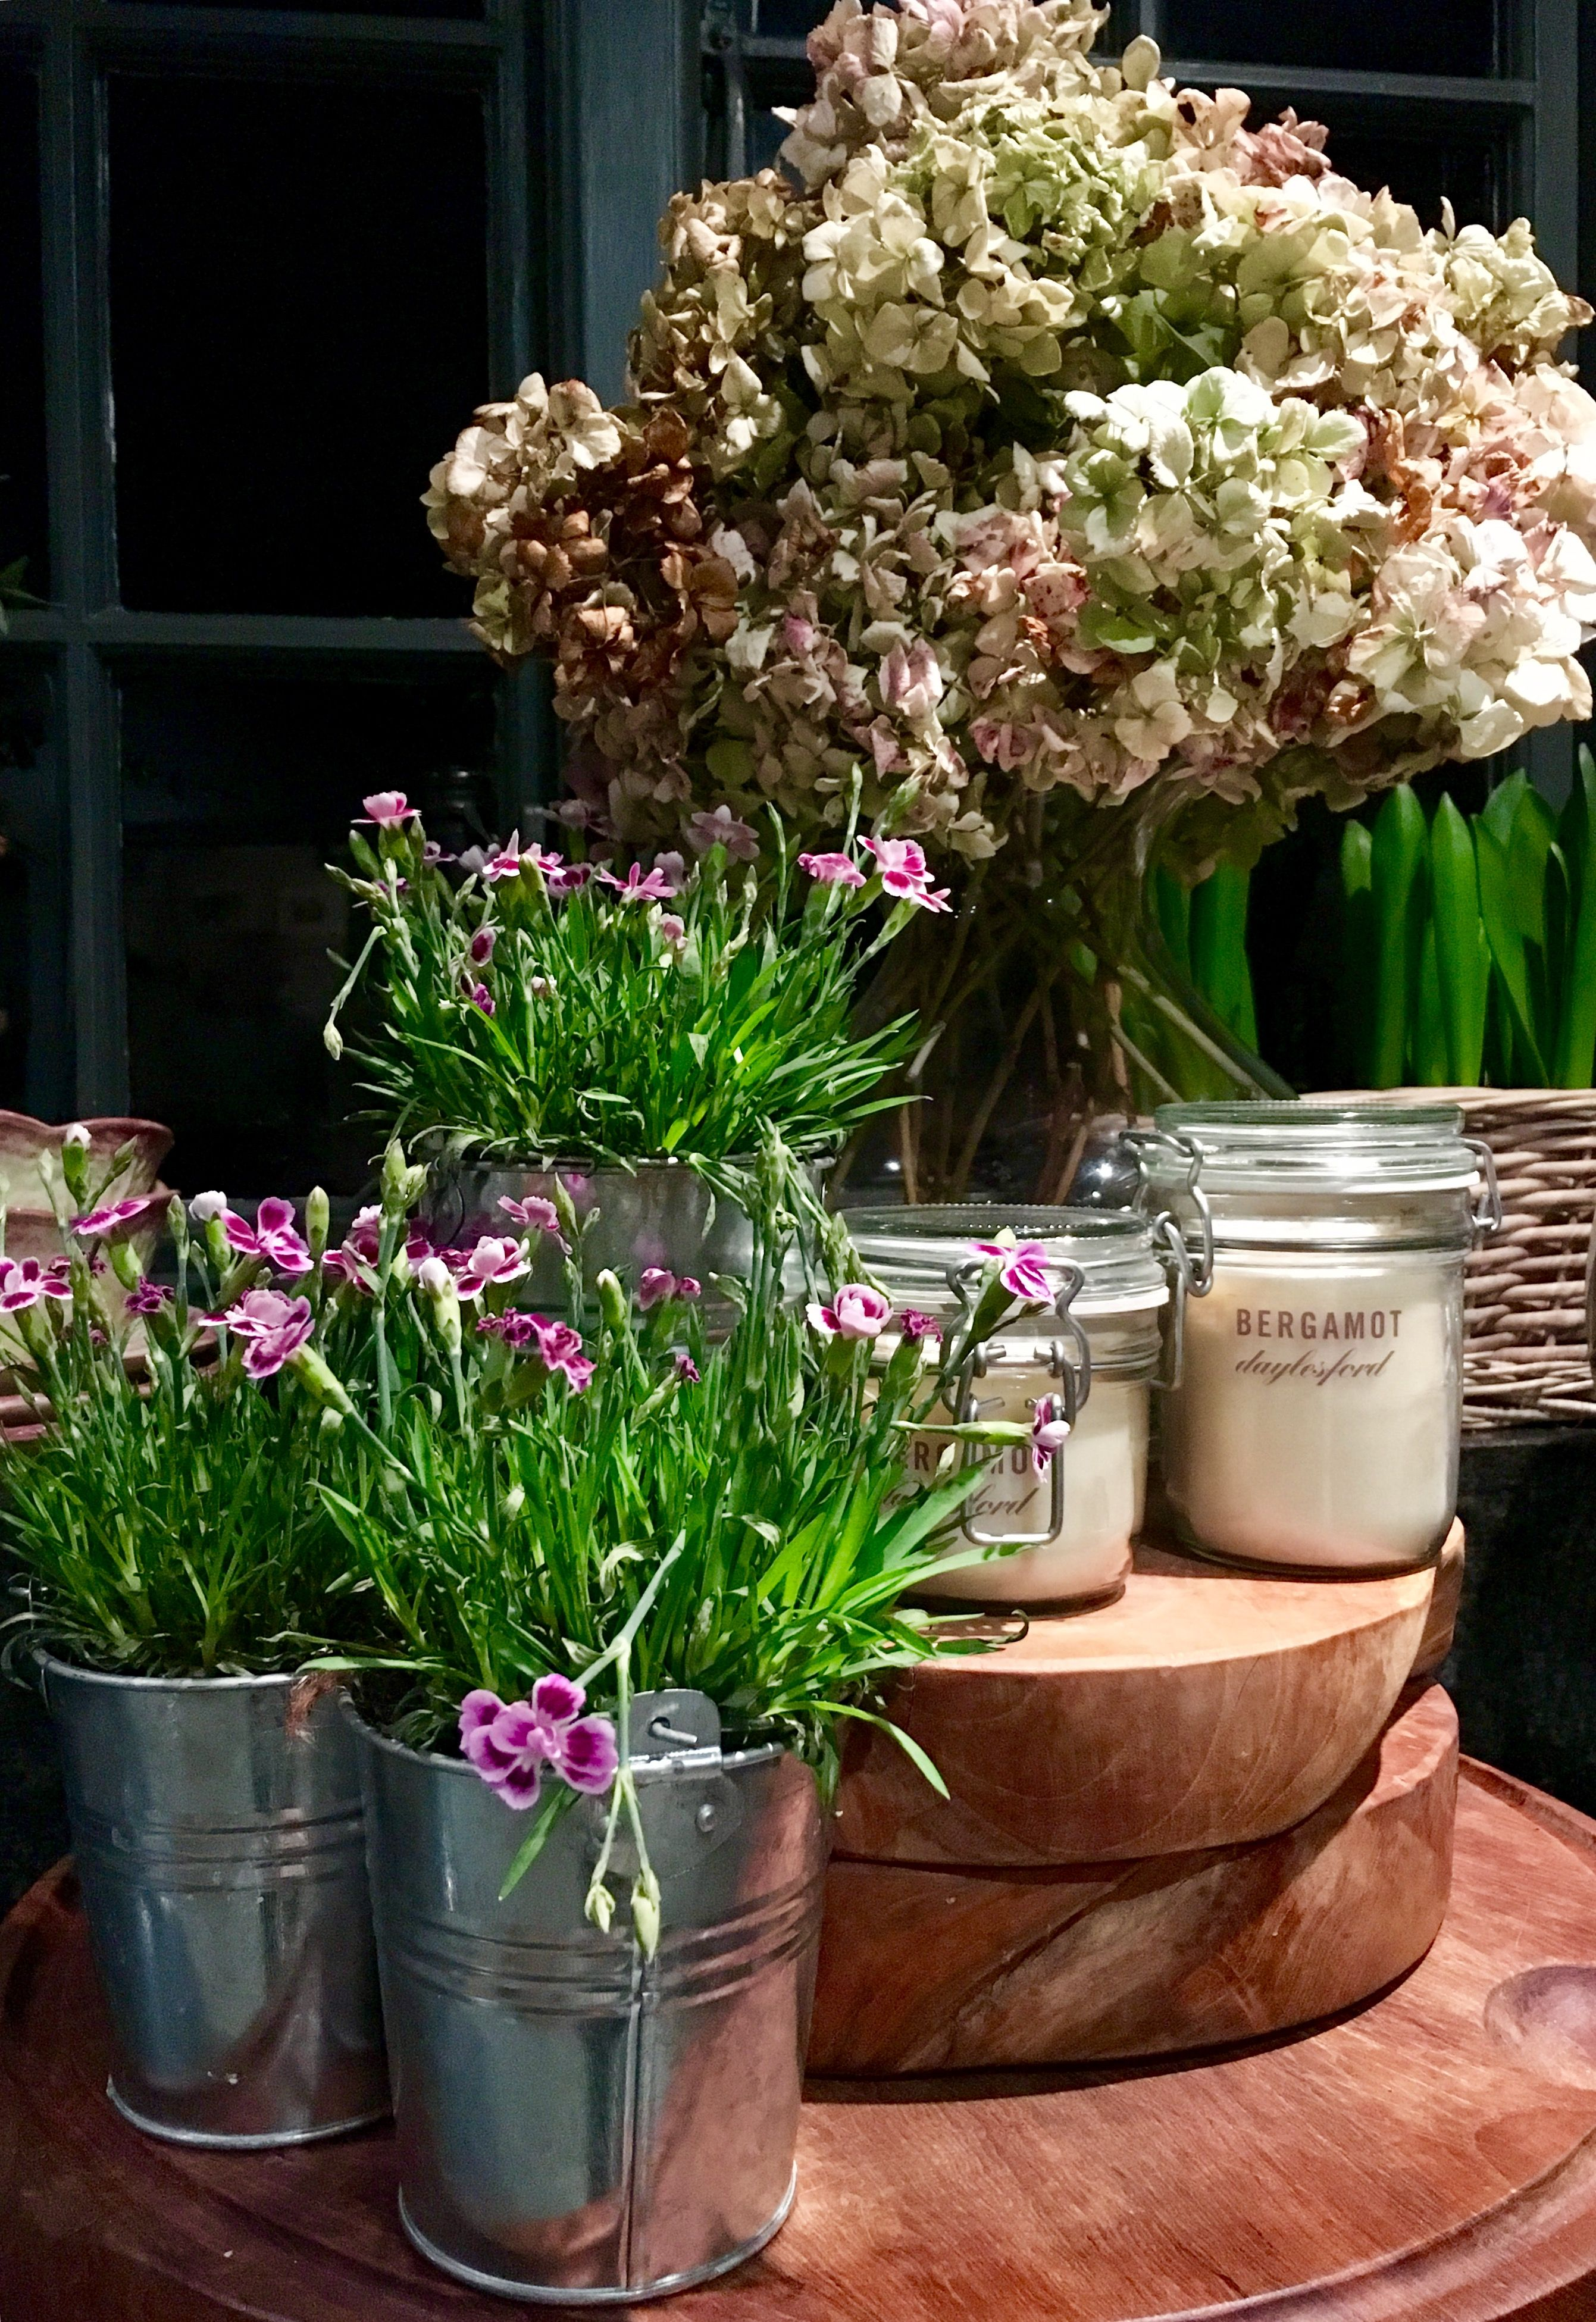 Potted pink flowers make for a great contrast in this tin pot planters